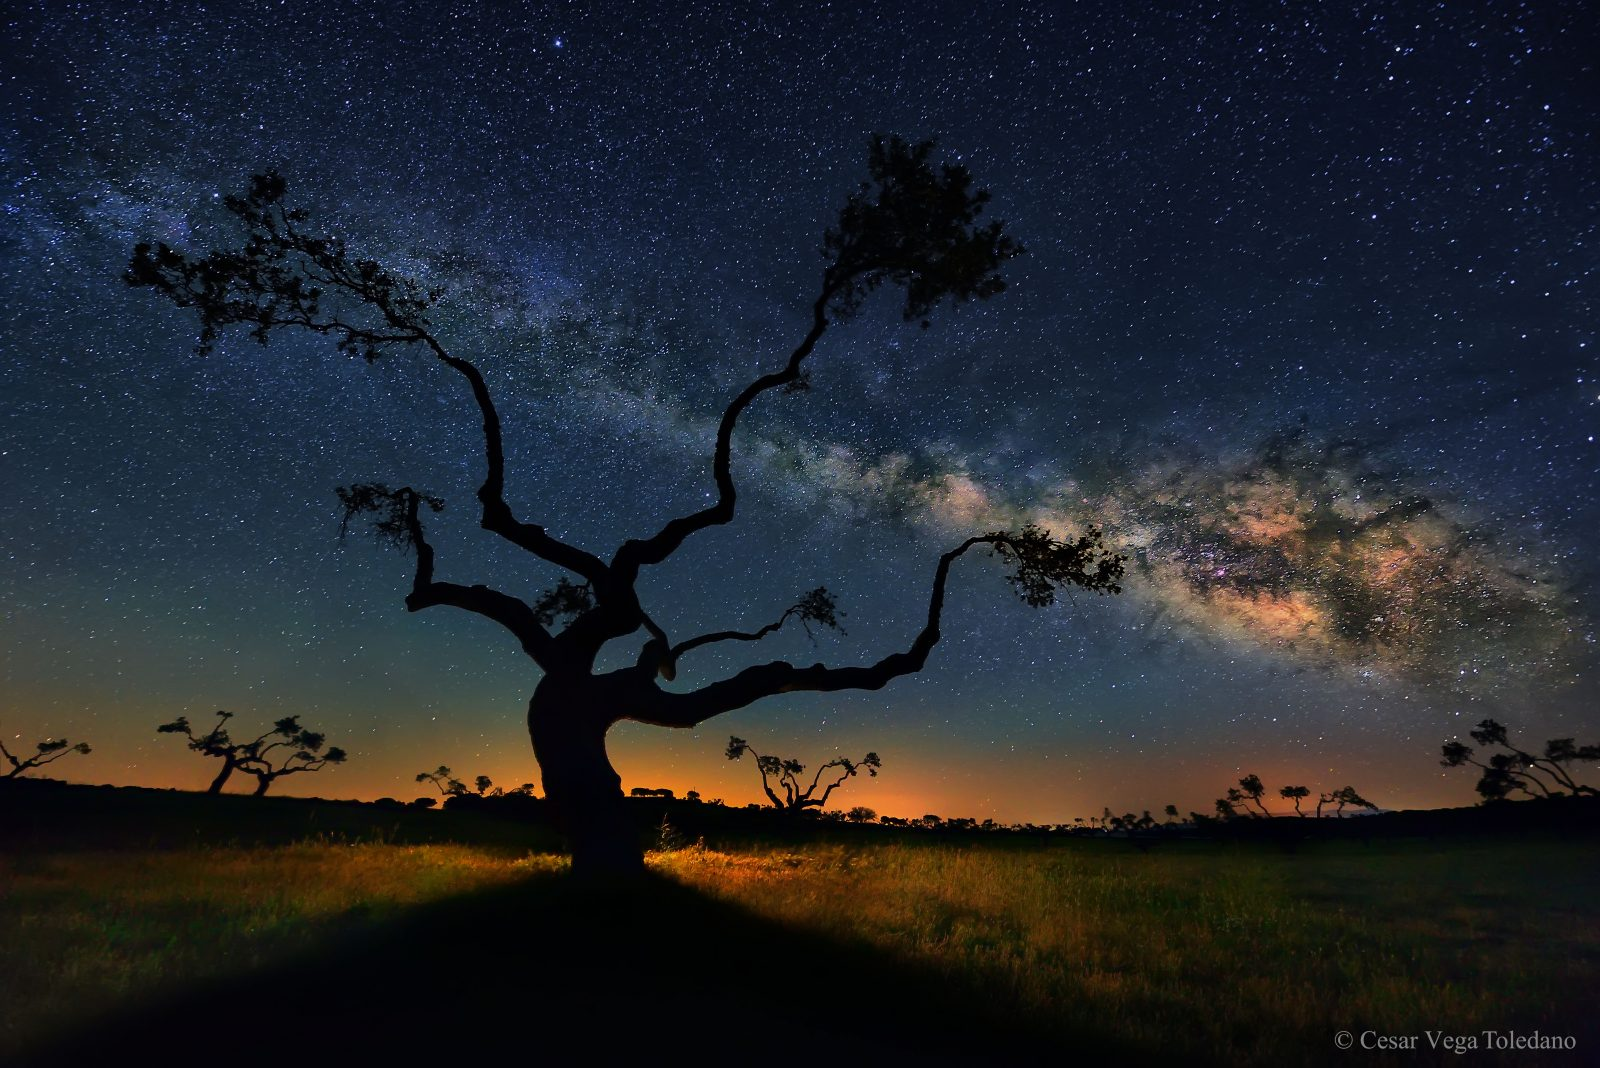 The Galaxy Tree